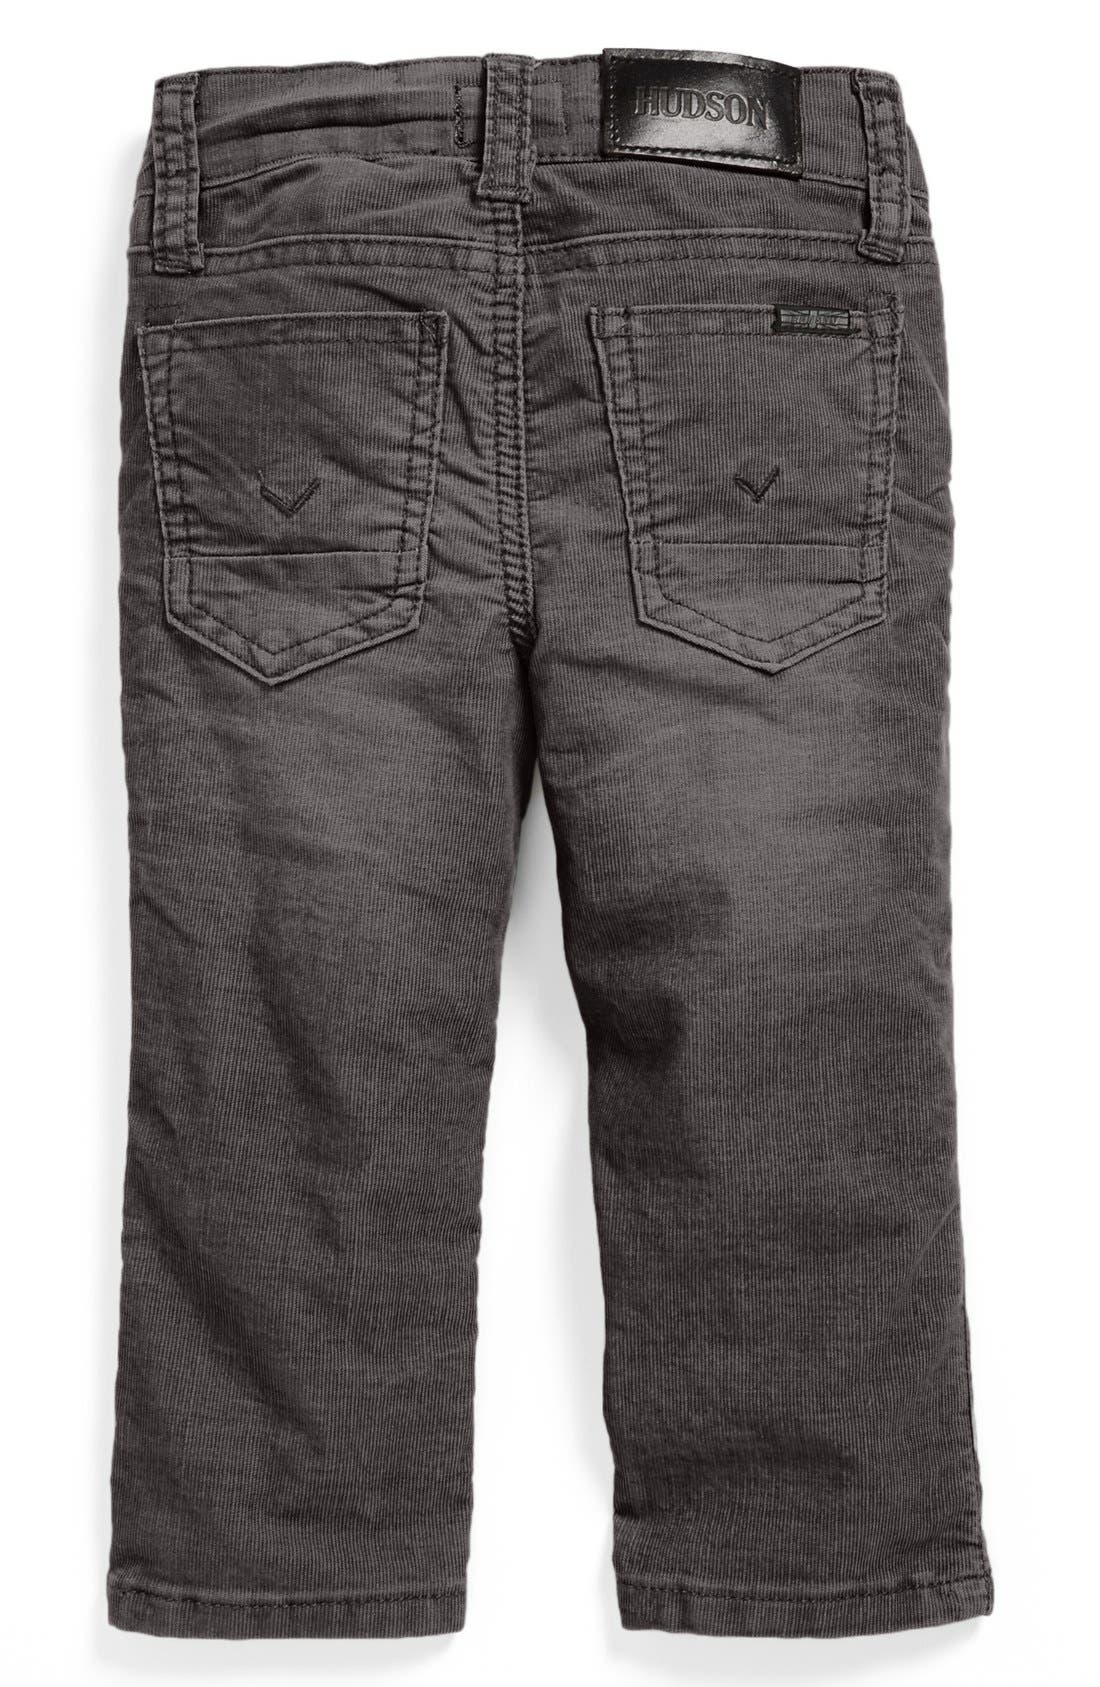 Alternate Image 1 Selected - Hudson Kids 'Parker' Corduroy Jeans (Baby Boys)